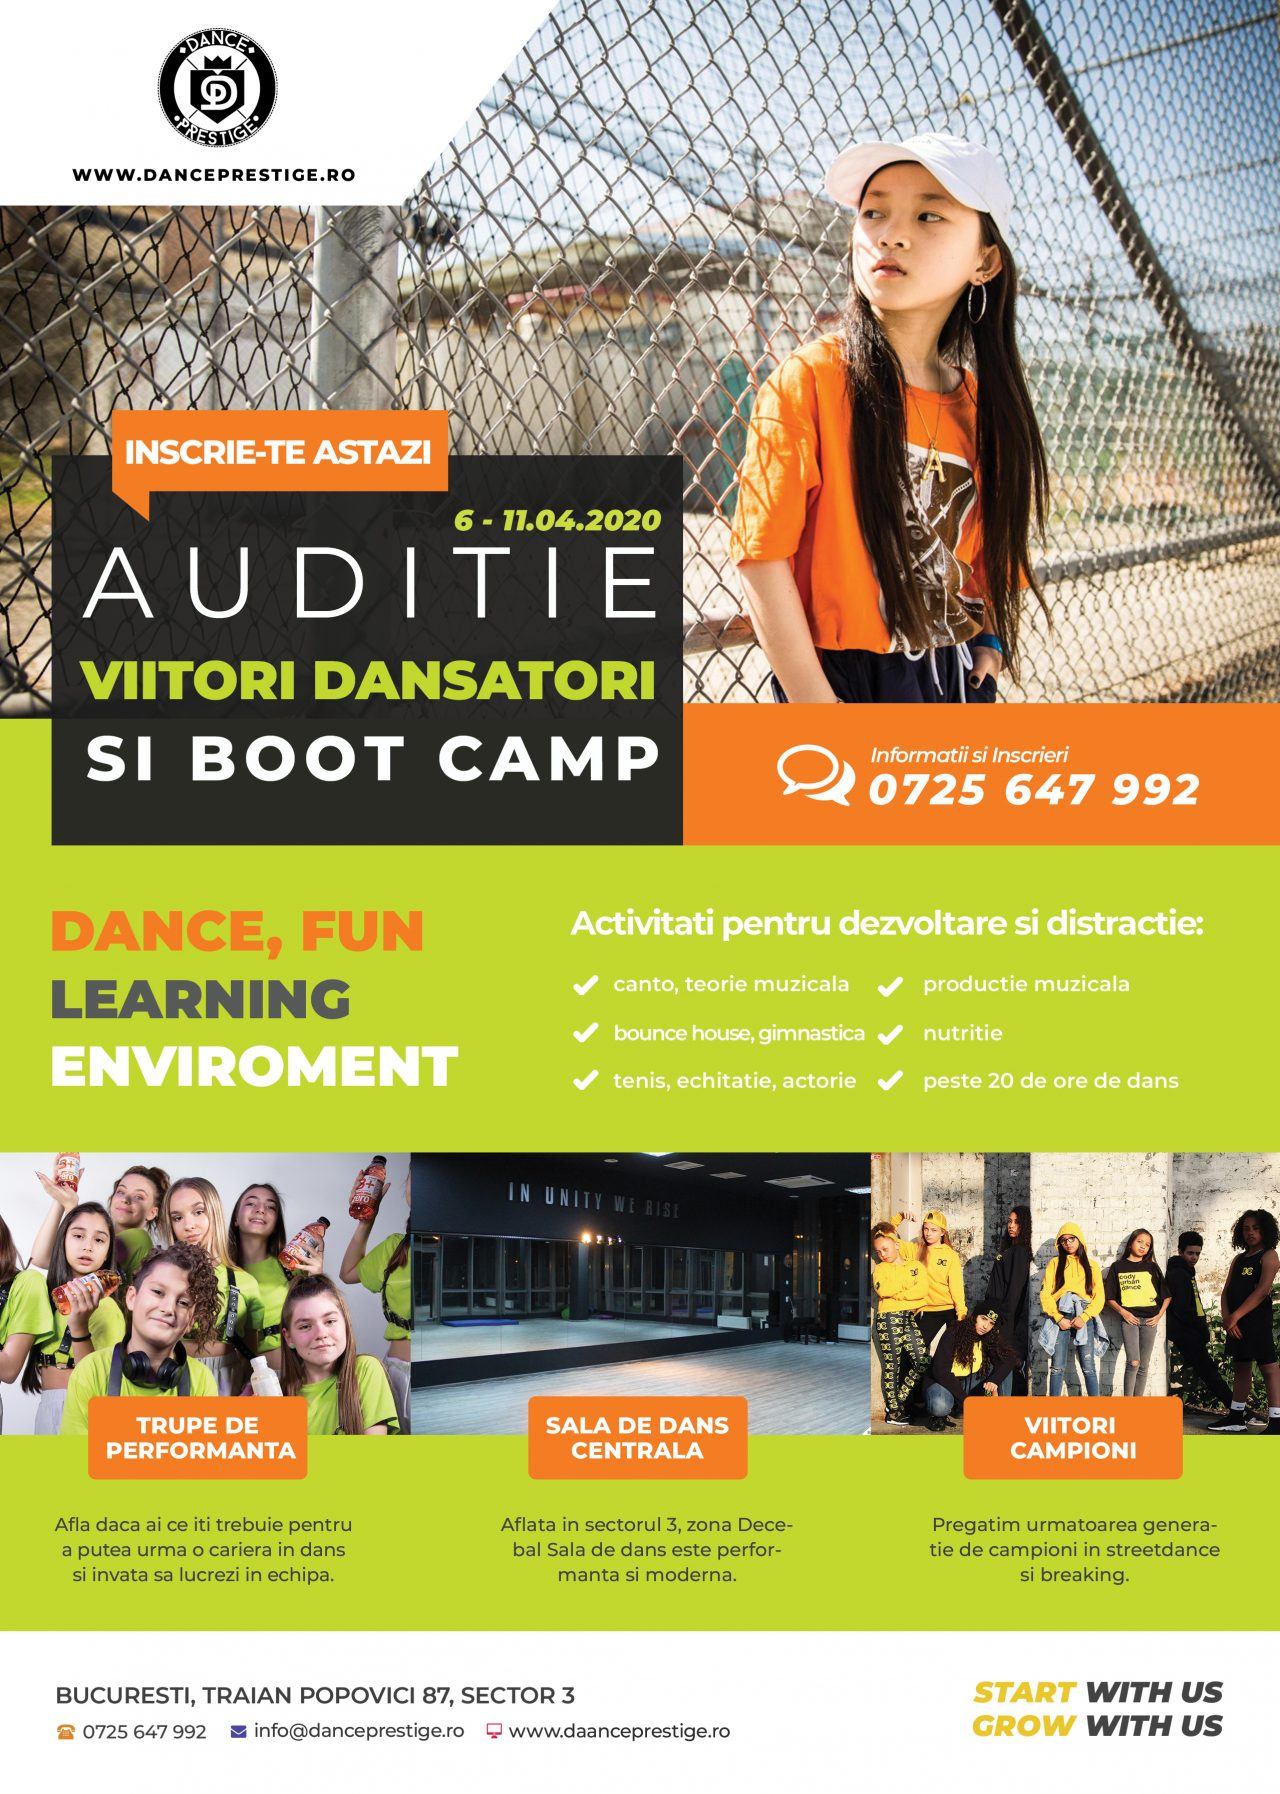 https://danceprestige.ro/wp-content/uploads/2020/03/kids-bootcamp-auditie-dansatori-1280x1794.jpg